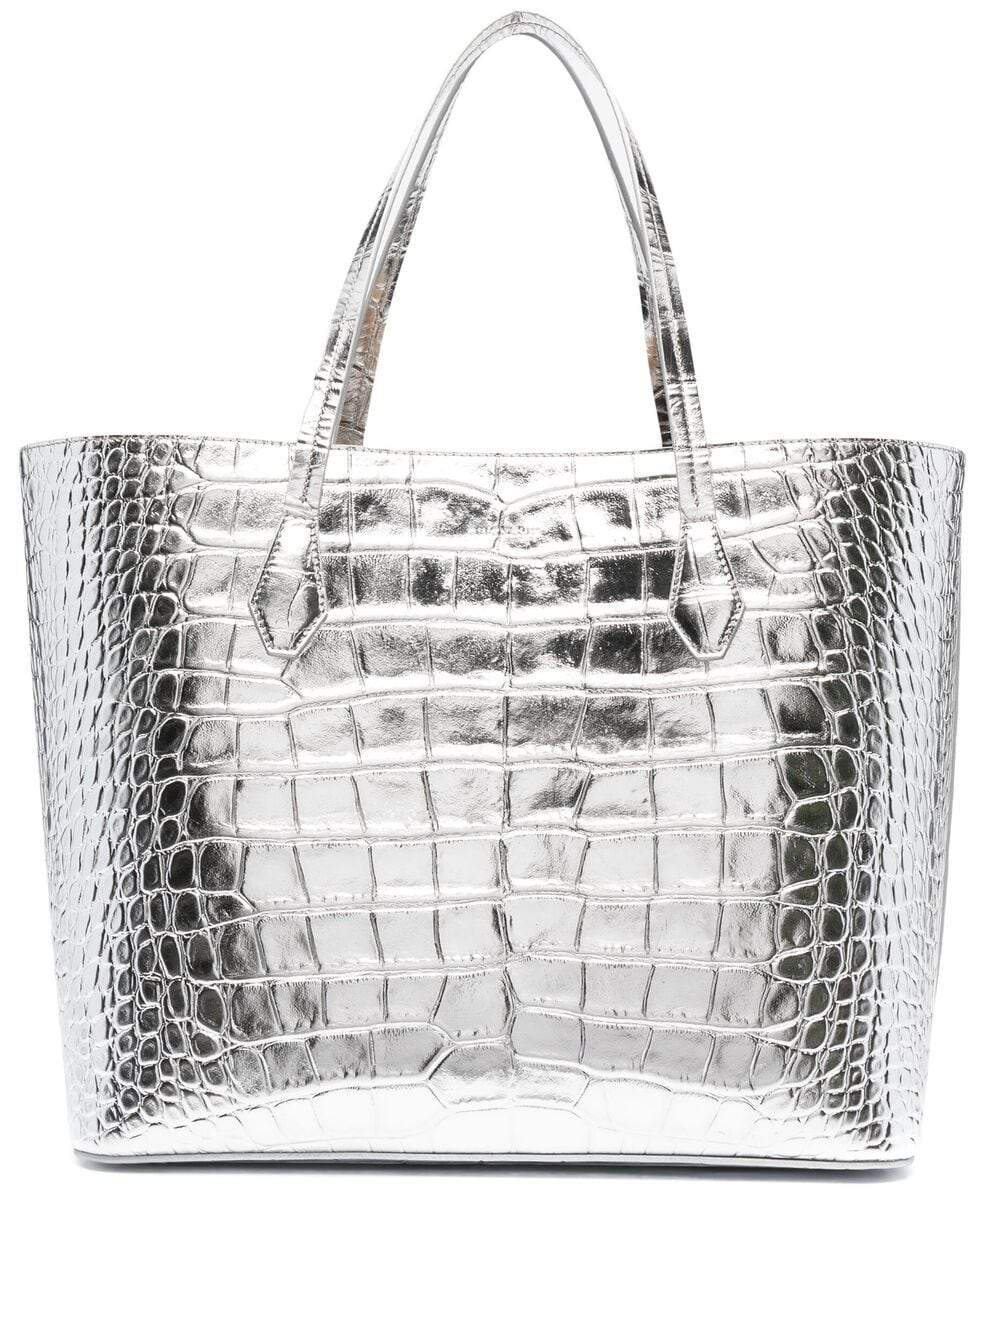 Givenchy Bags. Silver